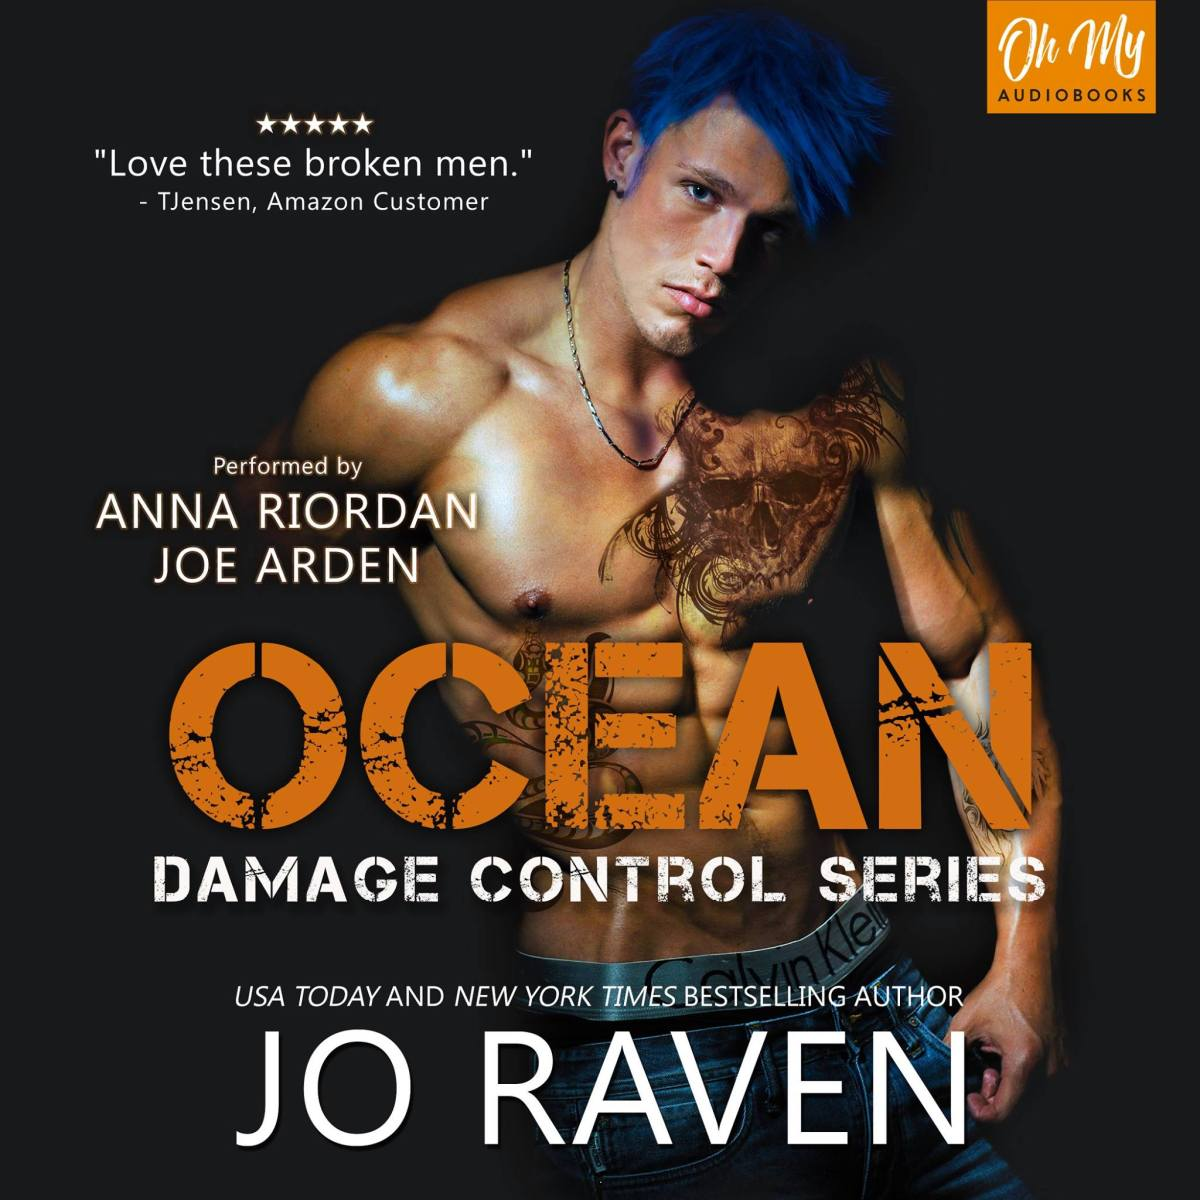 Do normal kids have to beg door to door for food? Ocean by Jo Raven #audiobook @AuthorJoRaven